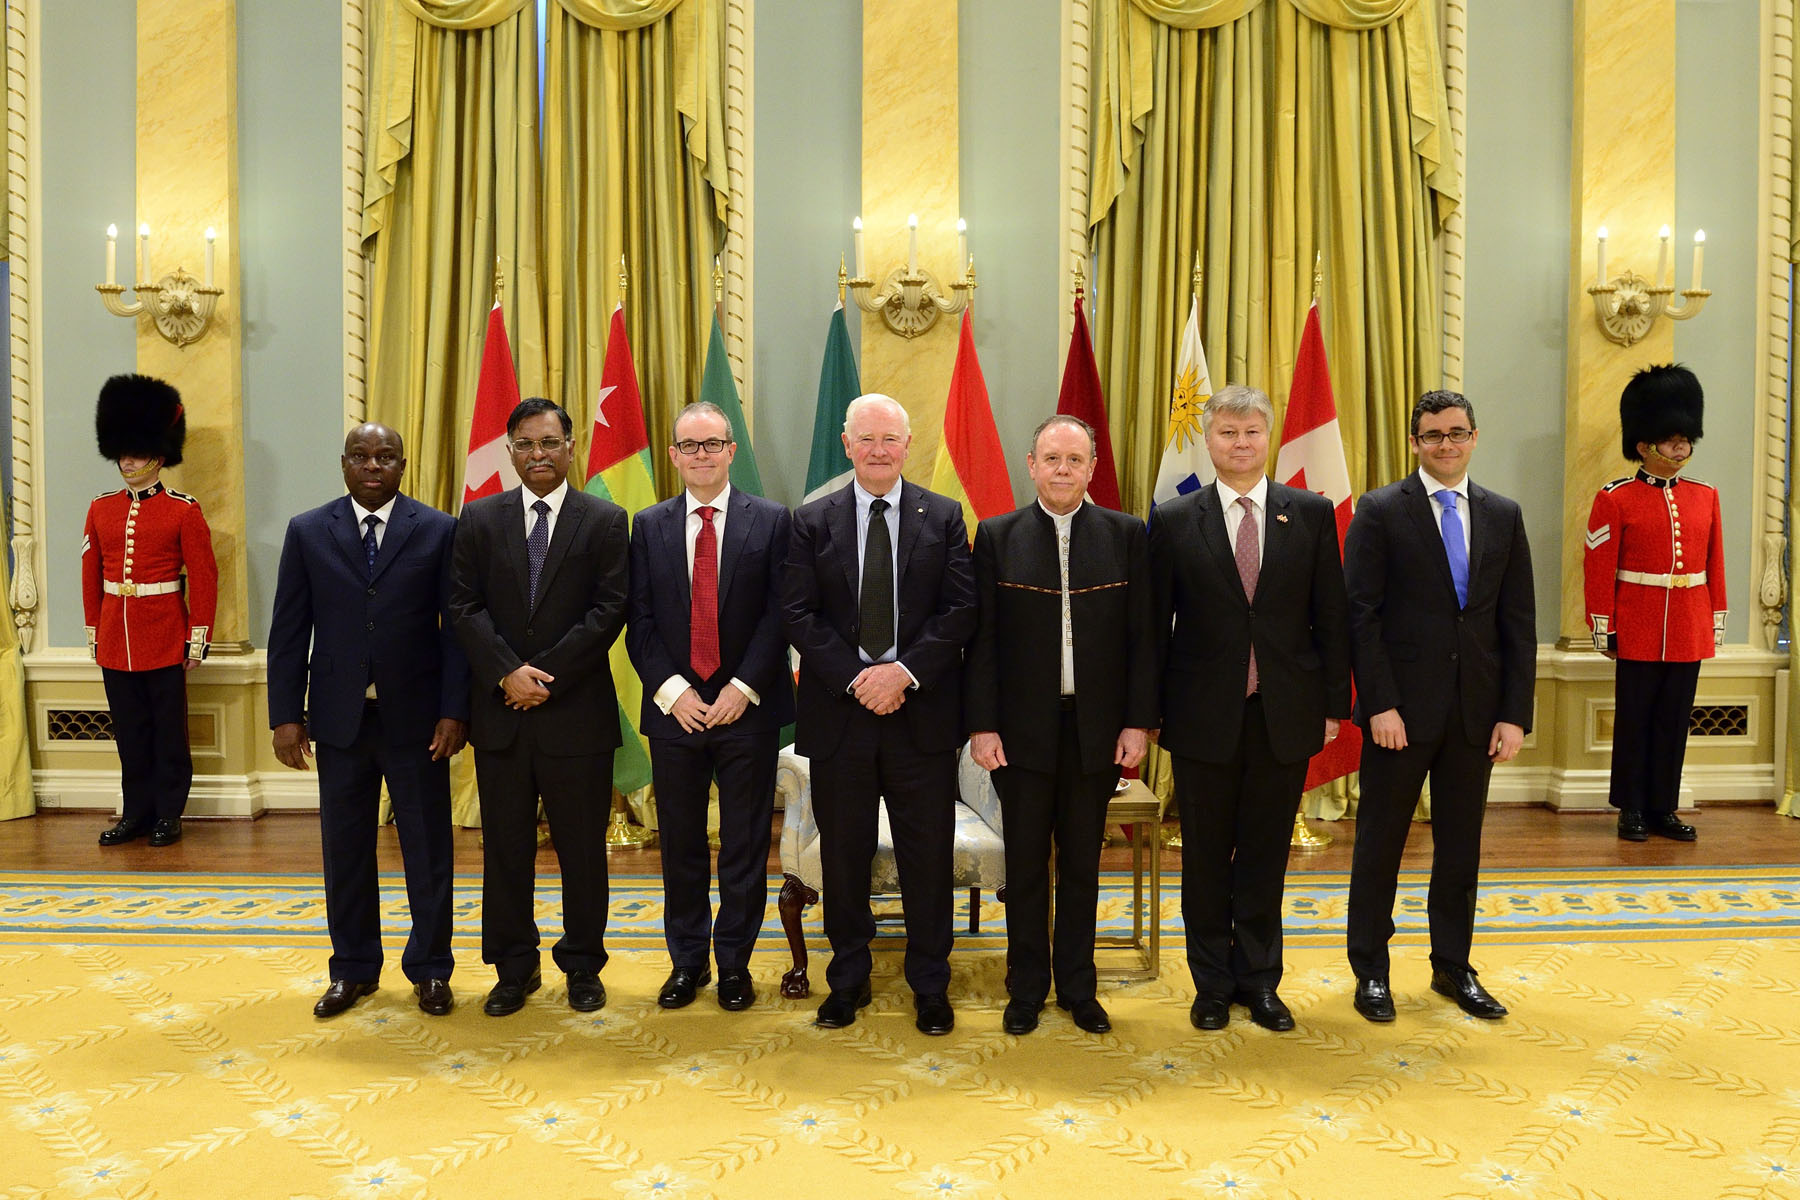 His Excellency the Right Honourable David Johnston, Governor General of Canada, received the letters of credence of six new heads of mission.